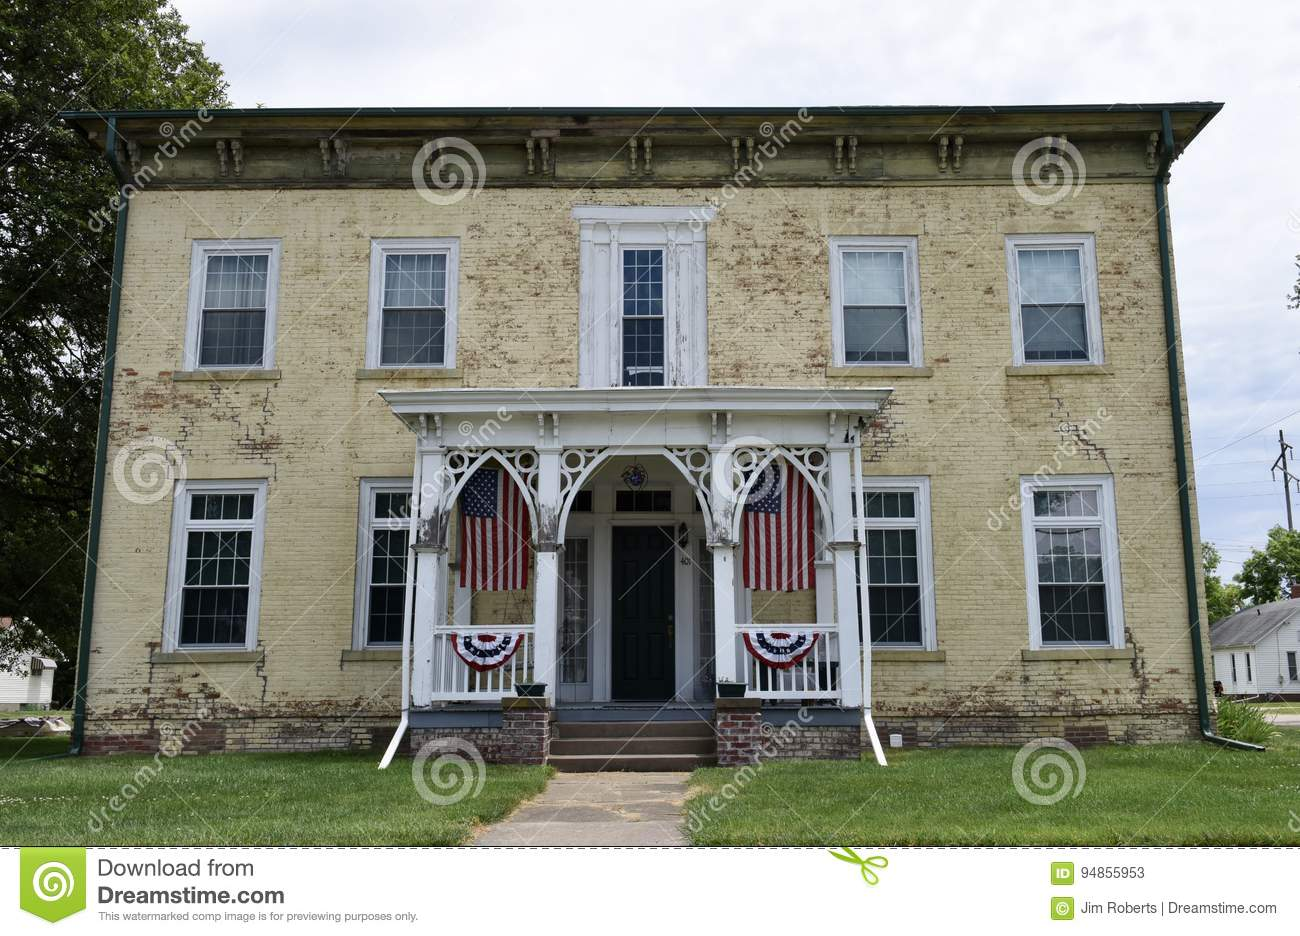 Illinois fulton county vermont - 1996 2017 Added Anne Architecture Built County Features Fulton